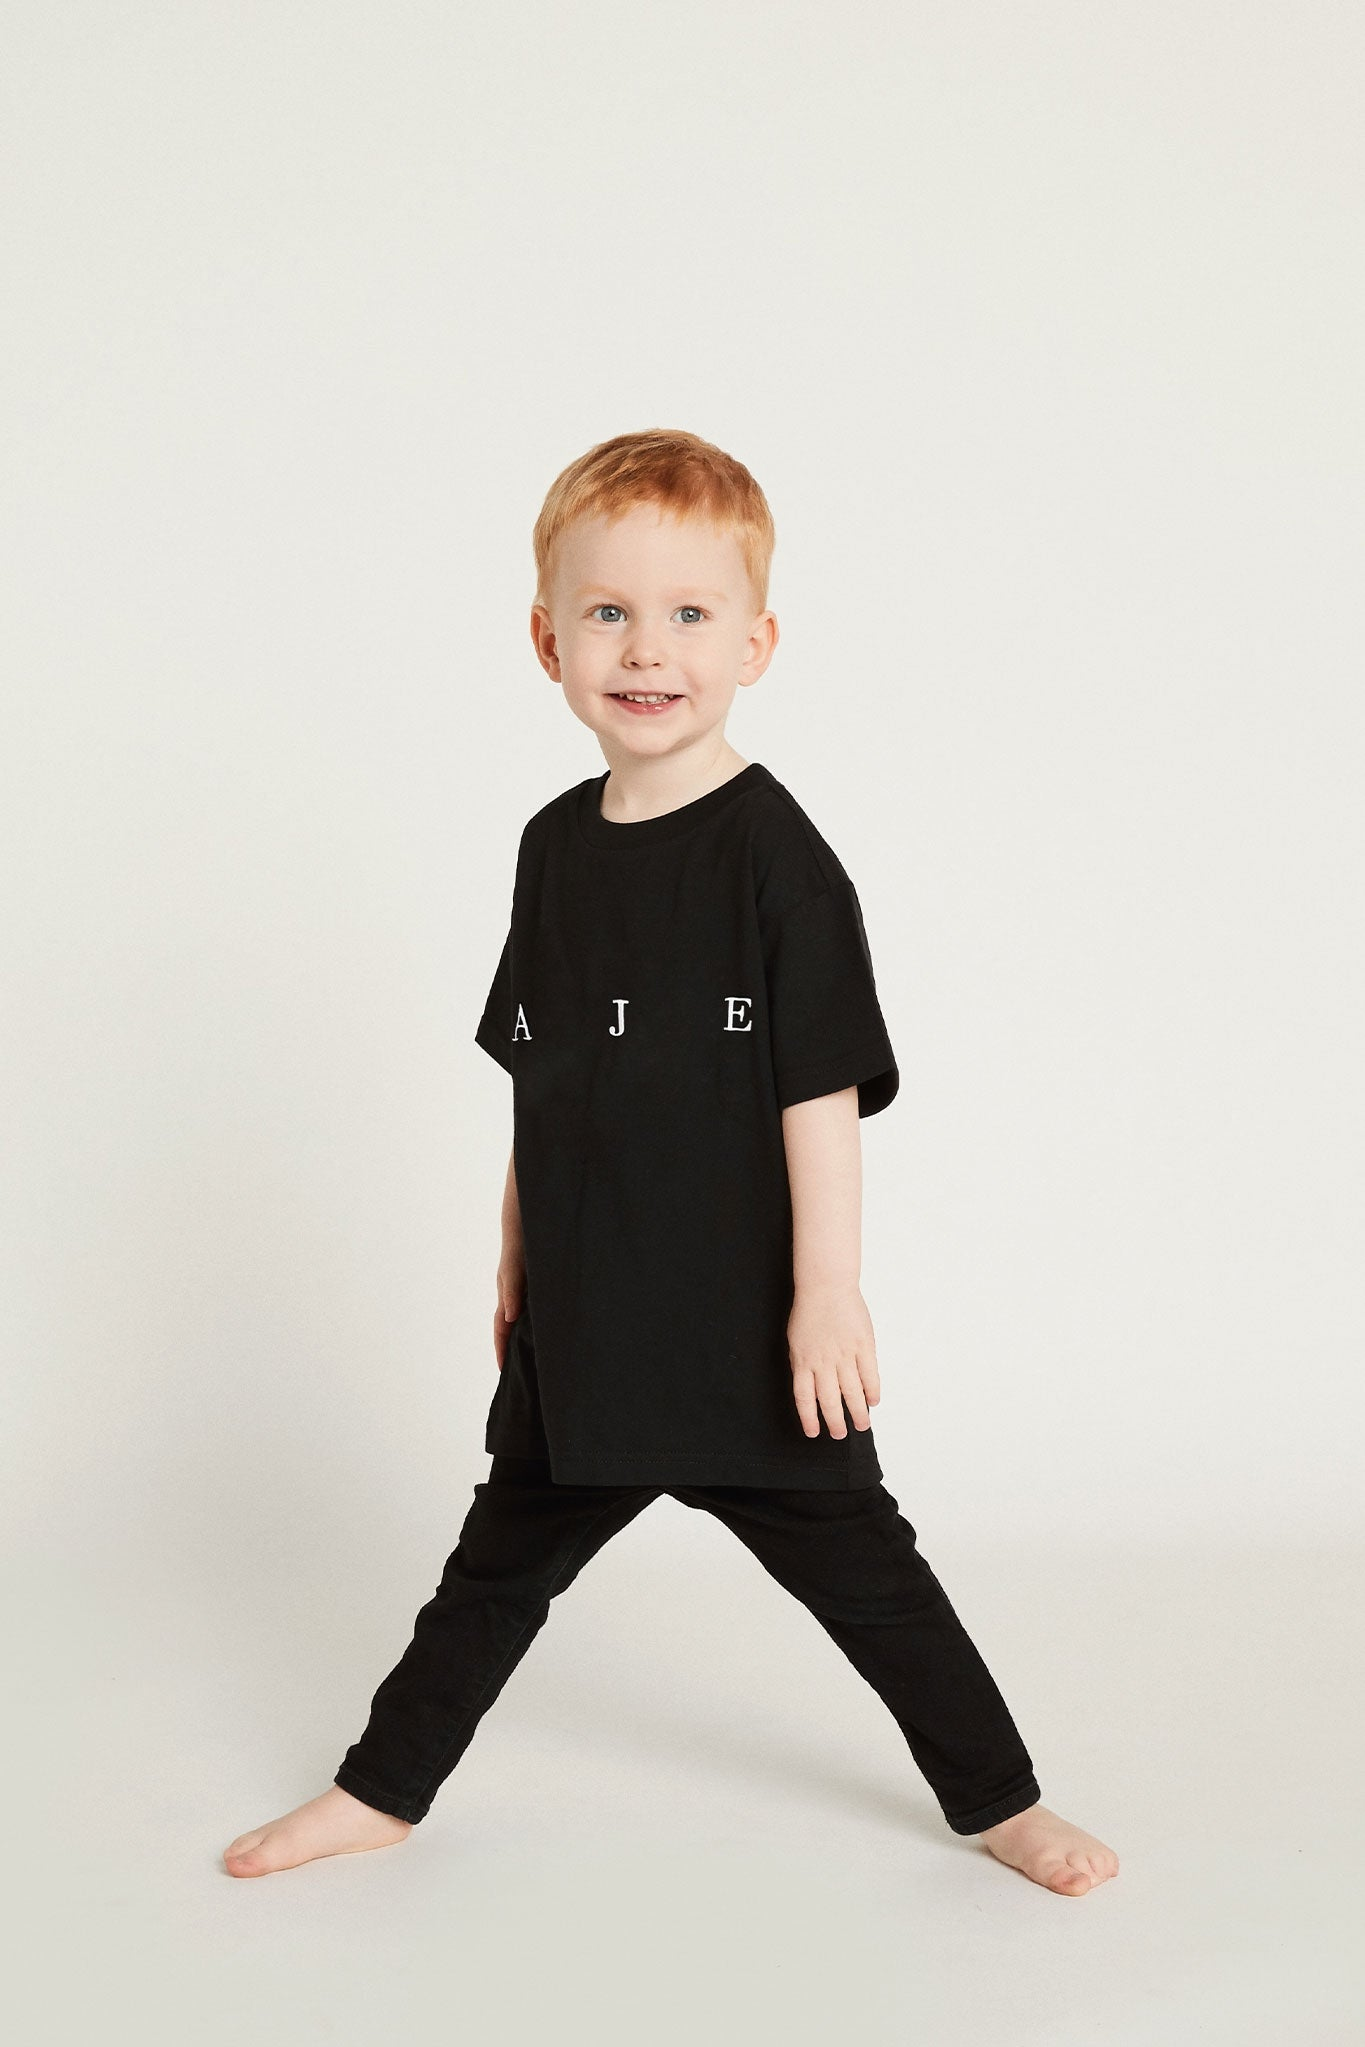 Aje Kids Bianca Tee Product View